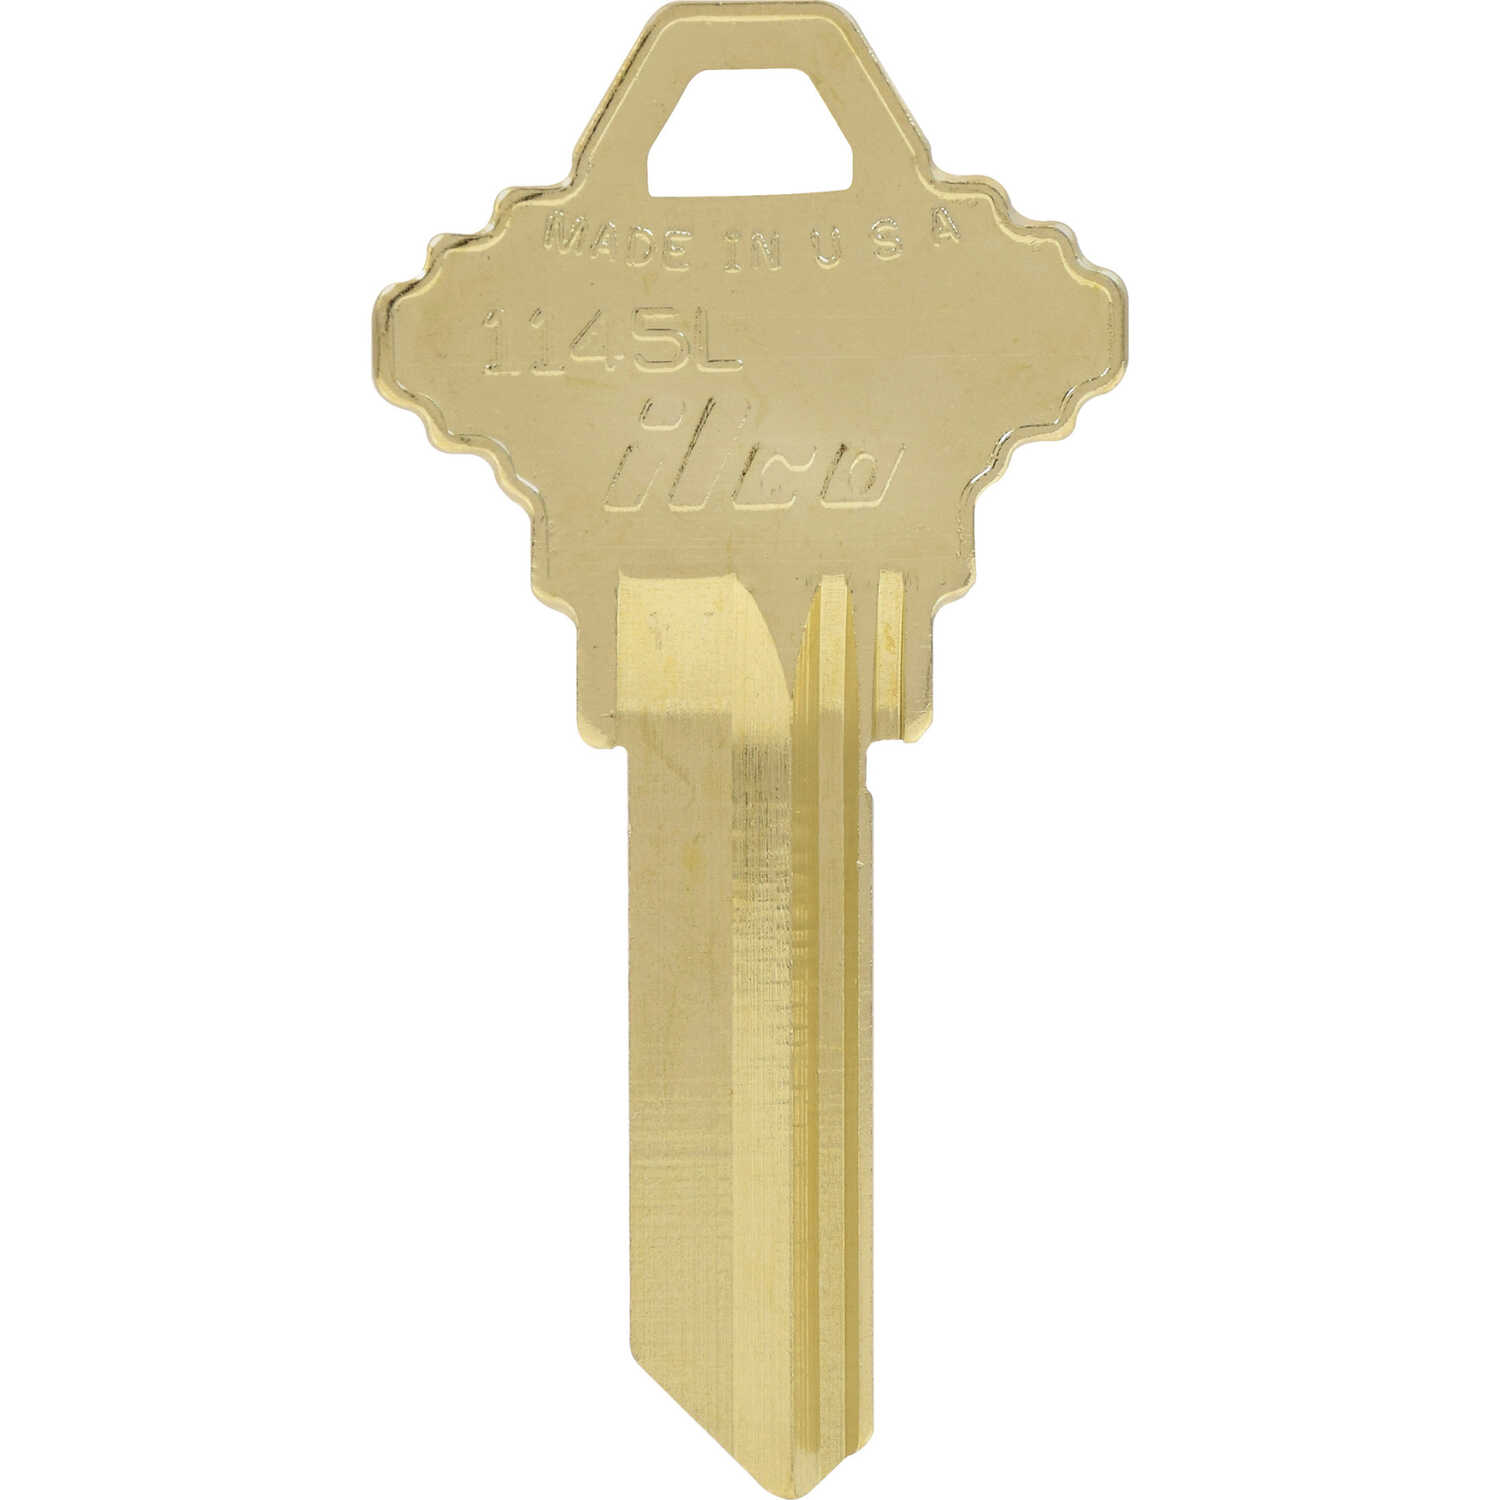 Hillman  KeyKrafter  House/Office  Universal Key Blank  2038  SC19  Single sided